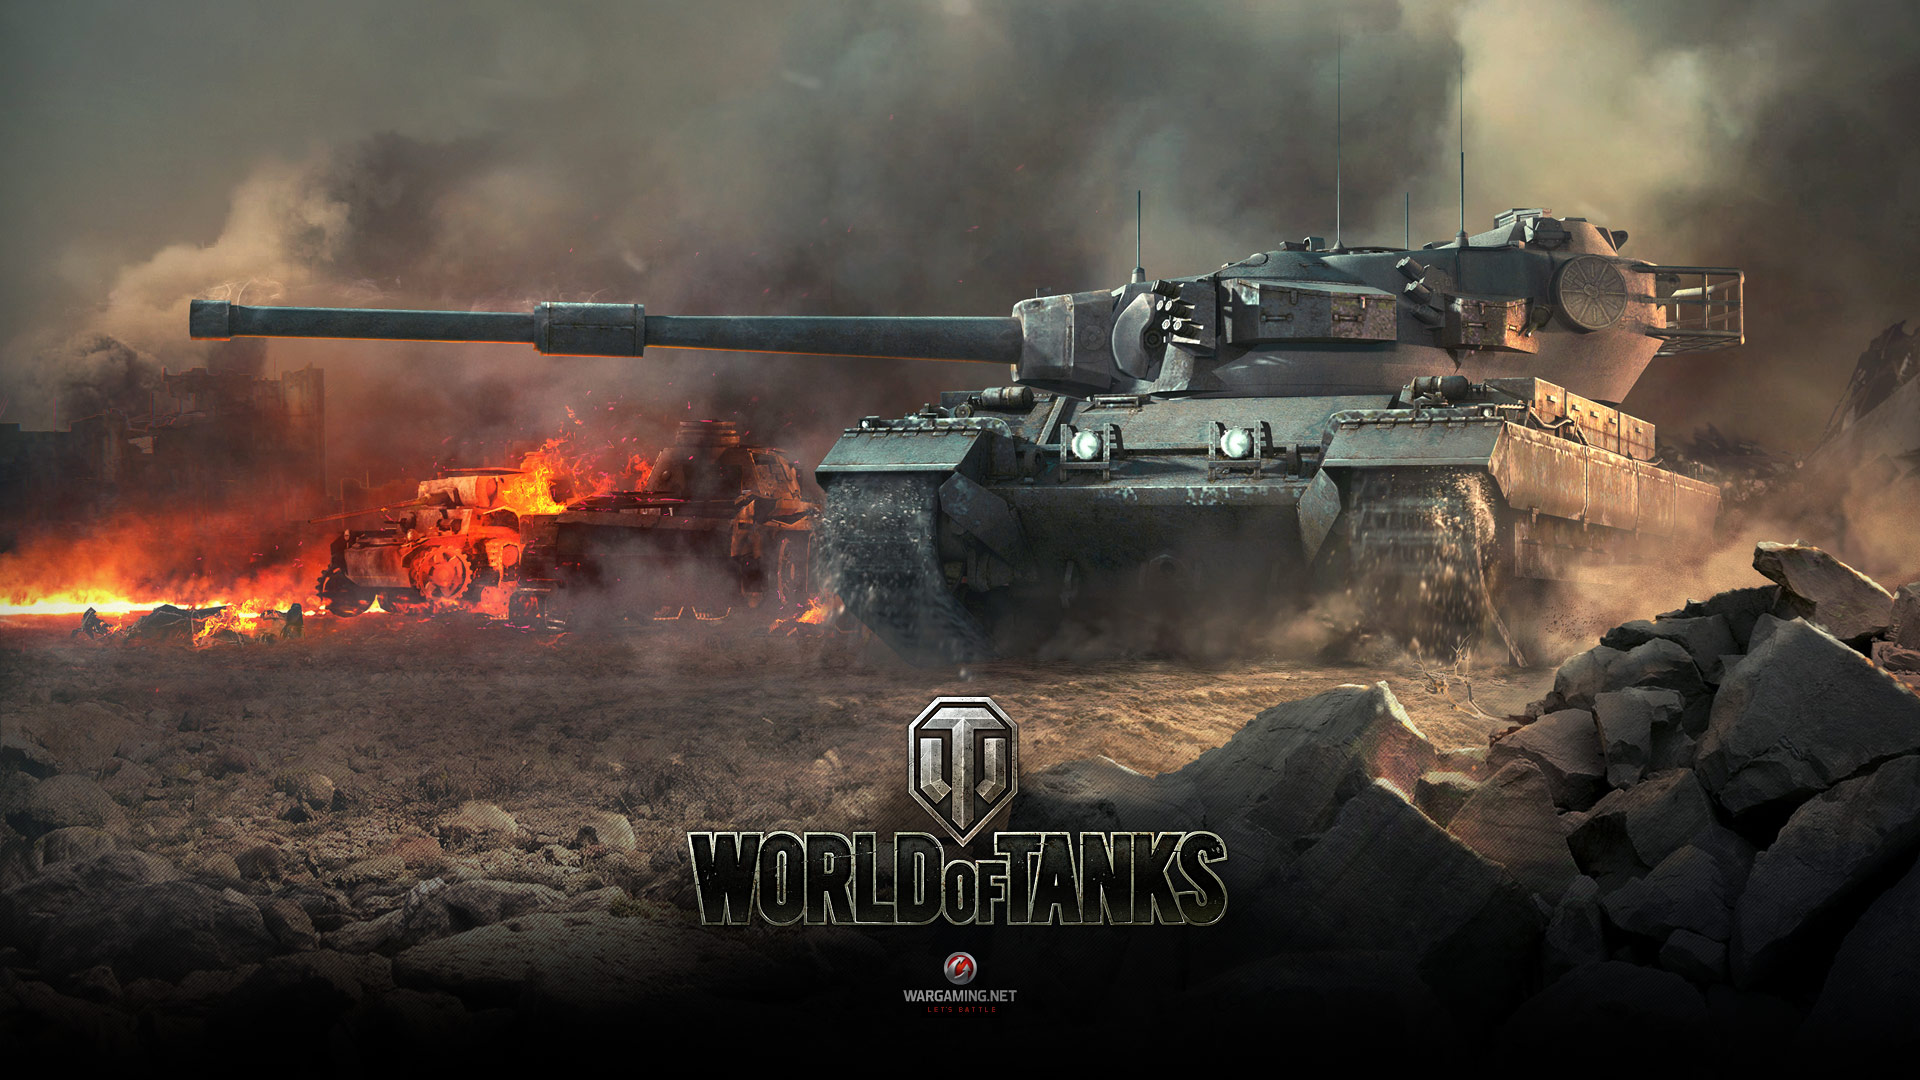 World of Tanks Scores Official Discipline Status at World Cyber Games 2013